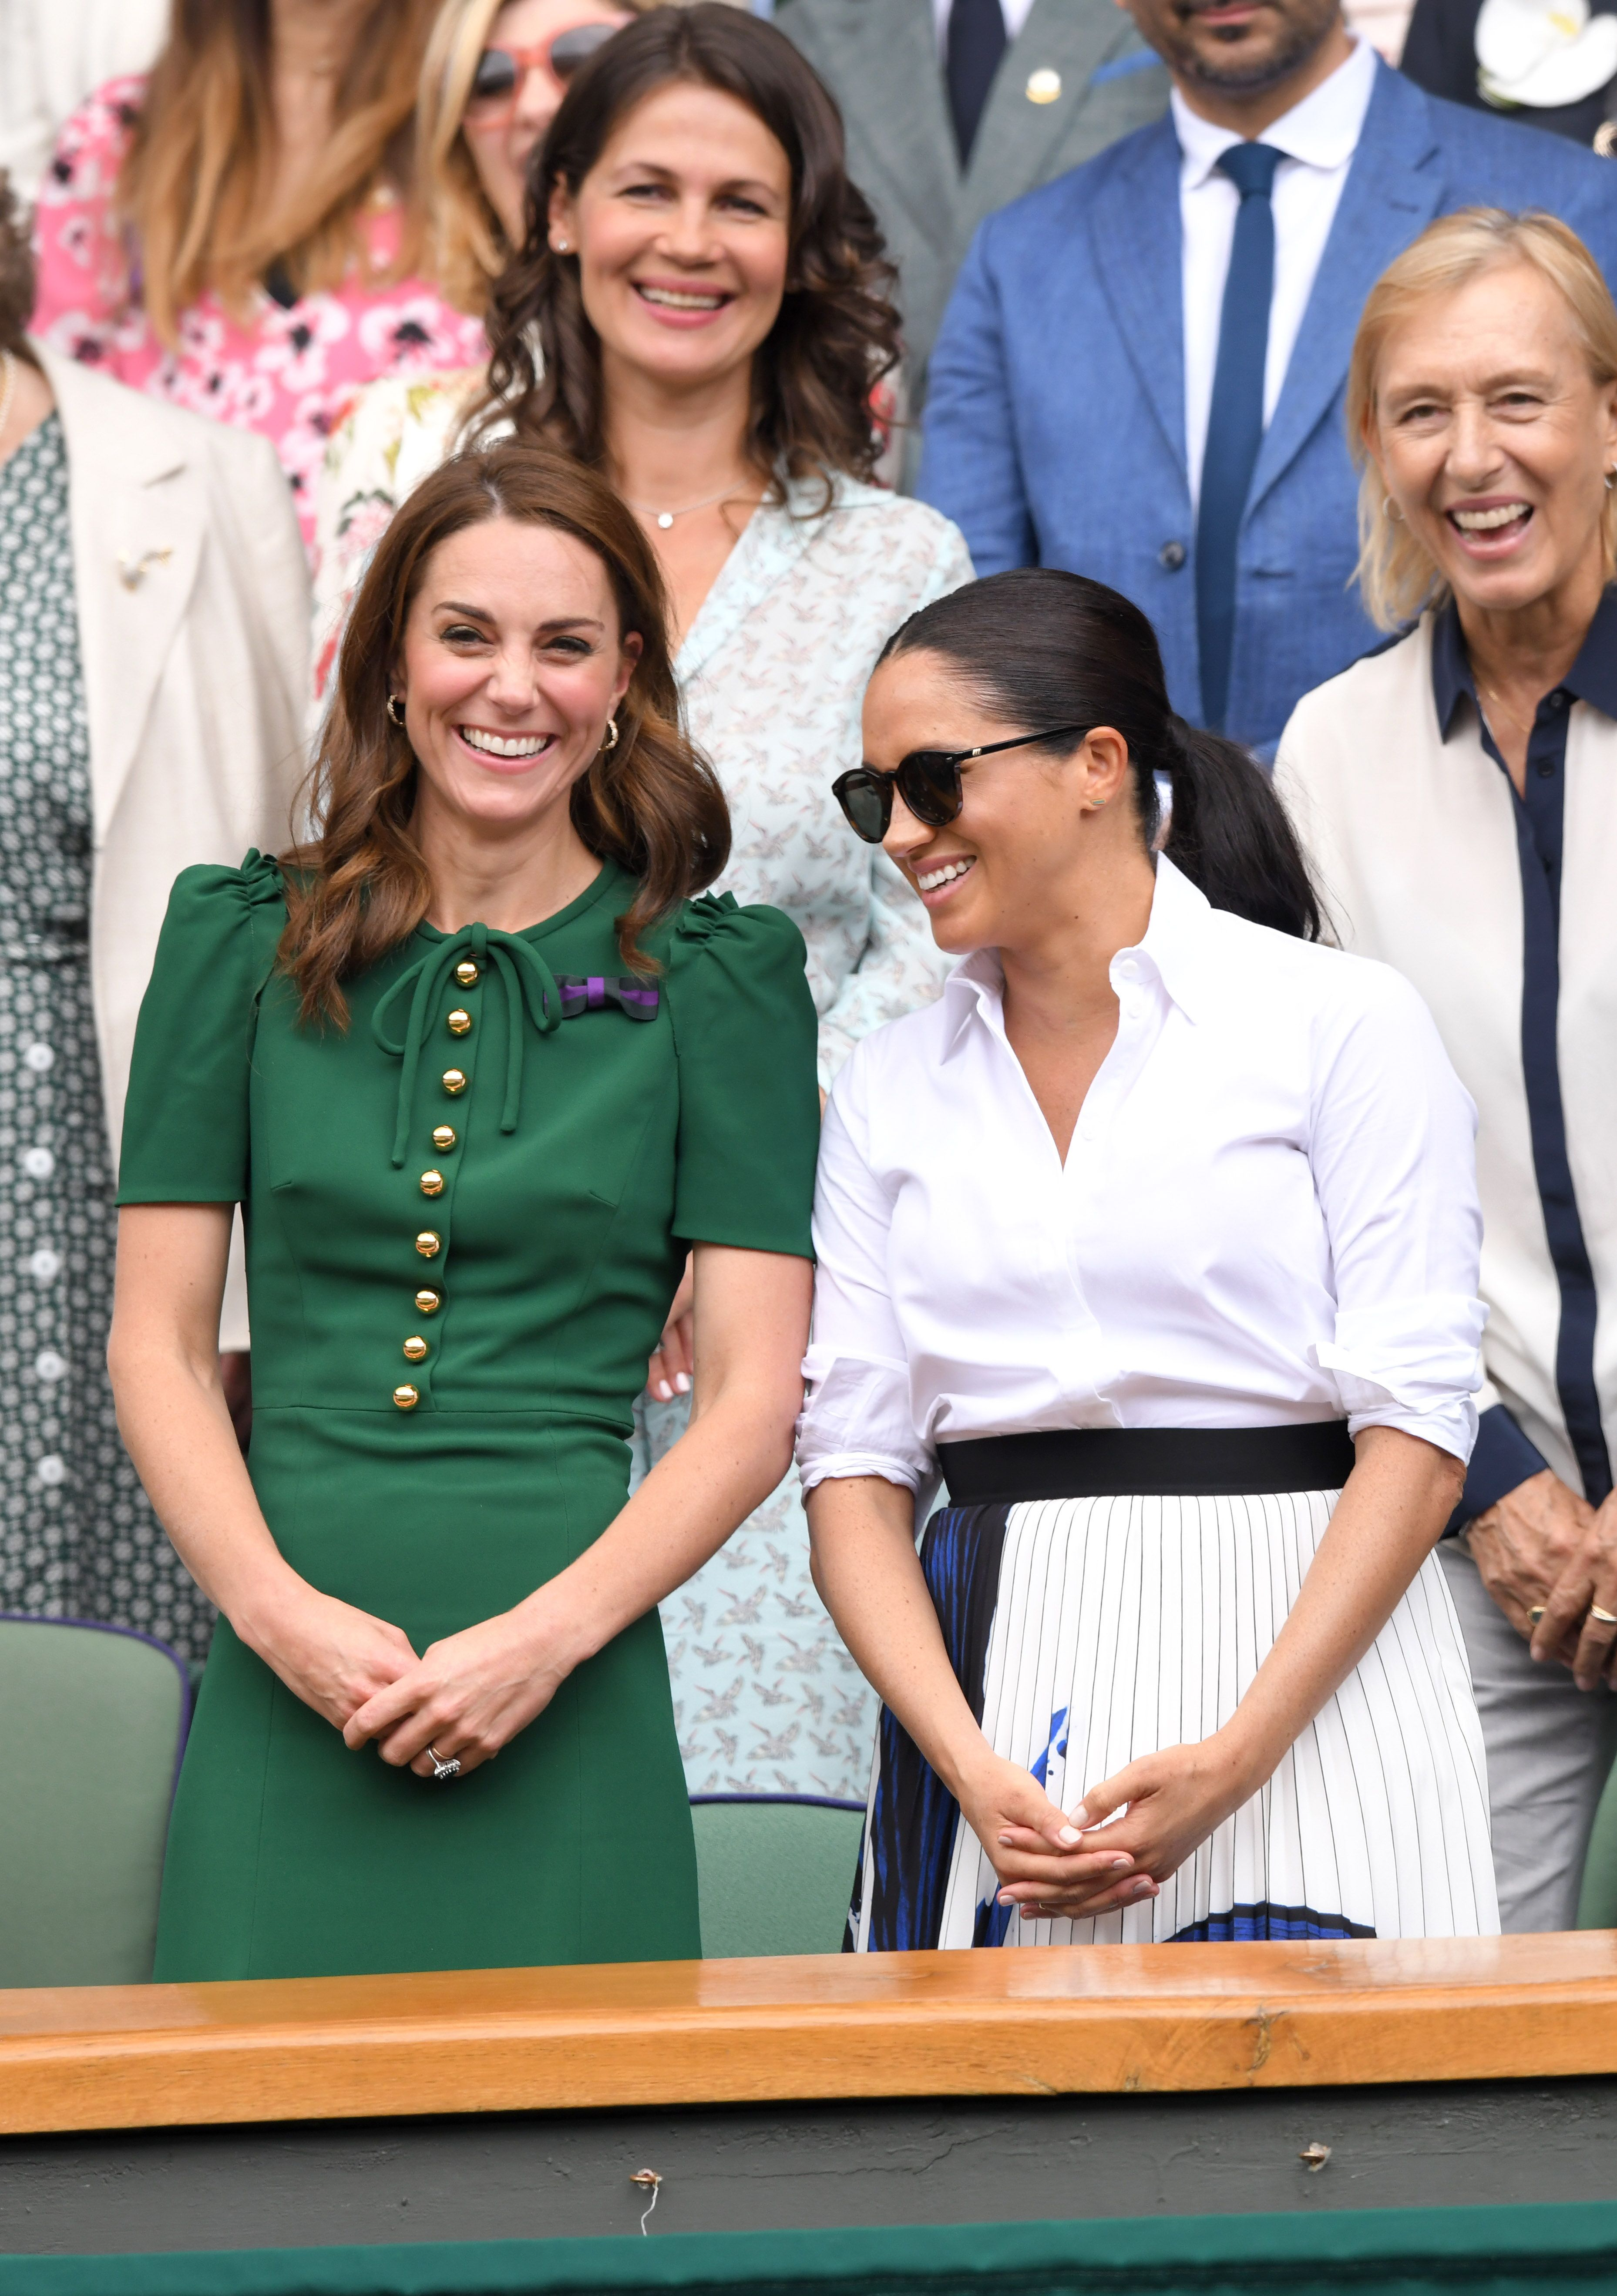 Kate Middleton Consoled Meghan Markle at Wimbledon After Serena Williams Lost